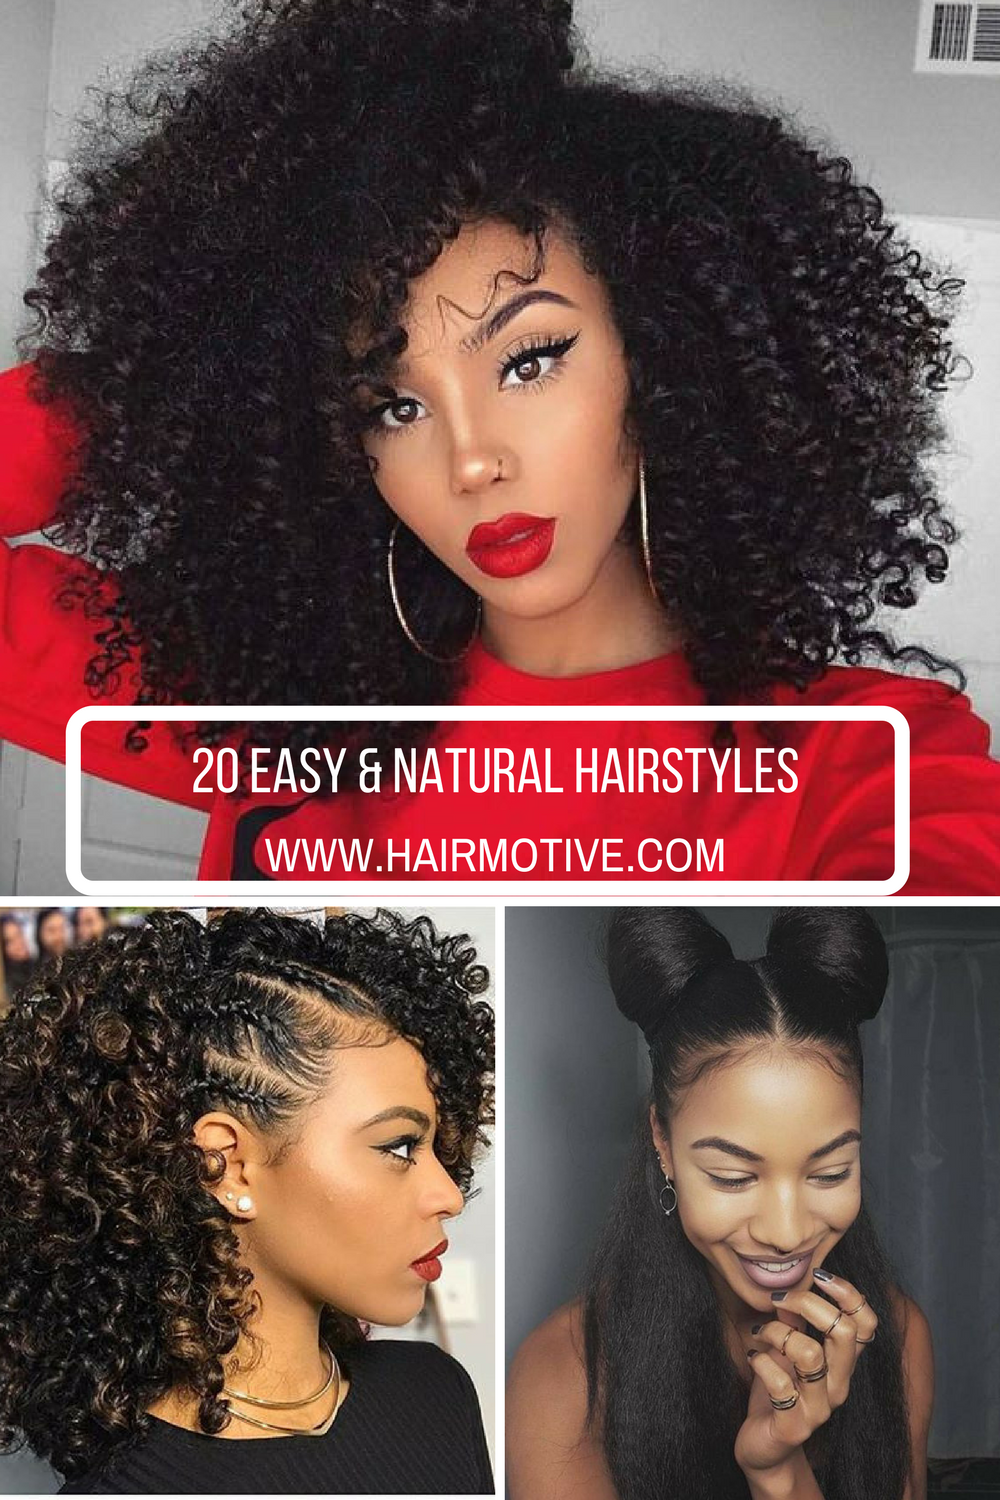 Your Natural Hairstyles For Afro Textured Hair For Busy Mornings Or For Evening Parties Natural Hair Styles Hair Styles Natural Hair Styles For Black Women